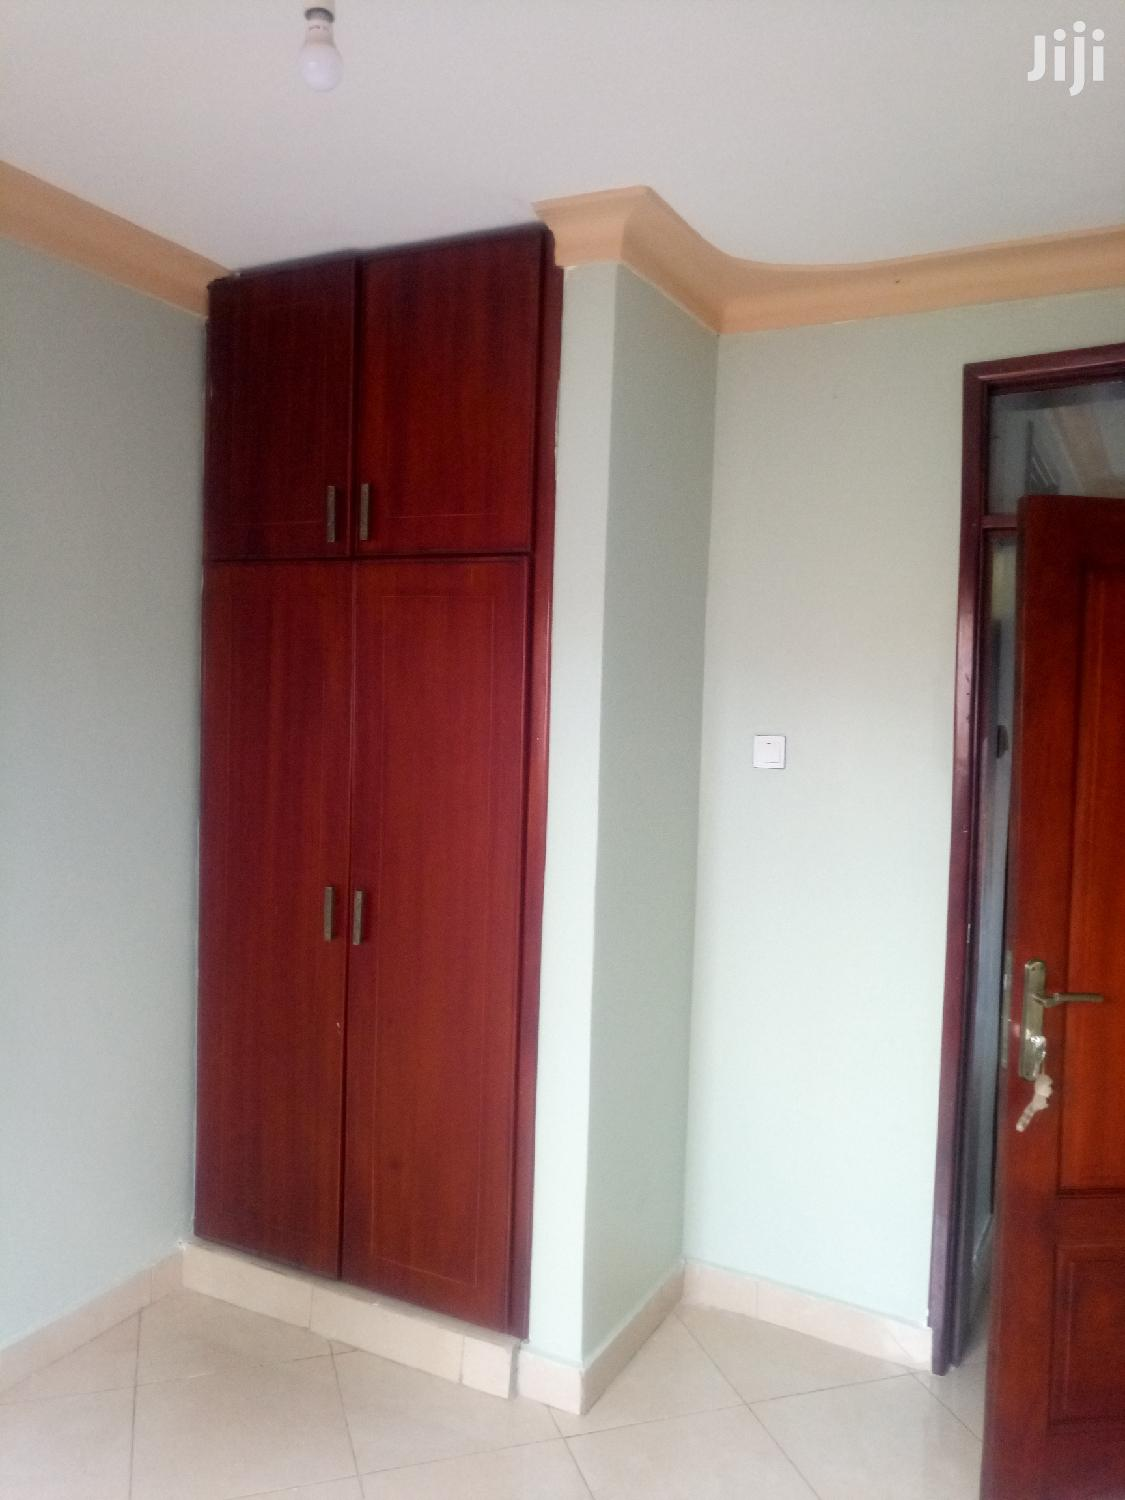 Three Bedrooms for Rent in Kyanja | Houses & Apartments For Rent for sale in Kampala, Central Region, Uganda